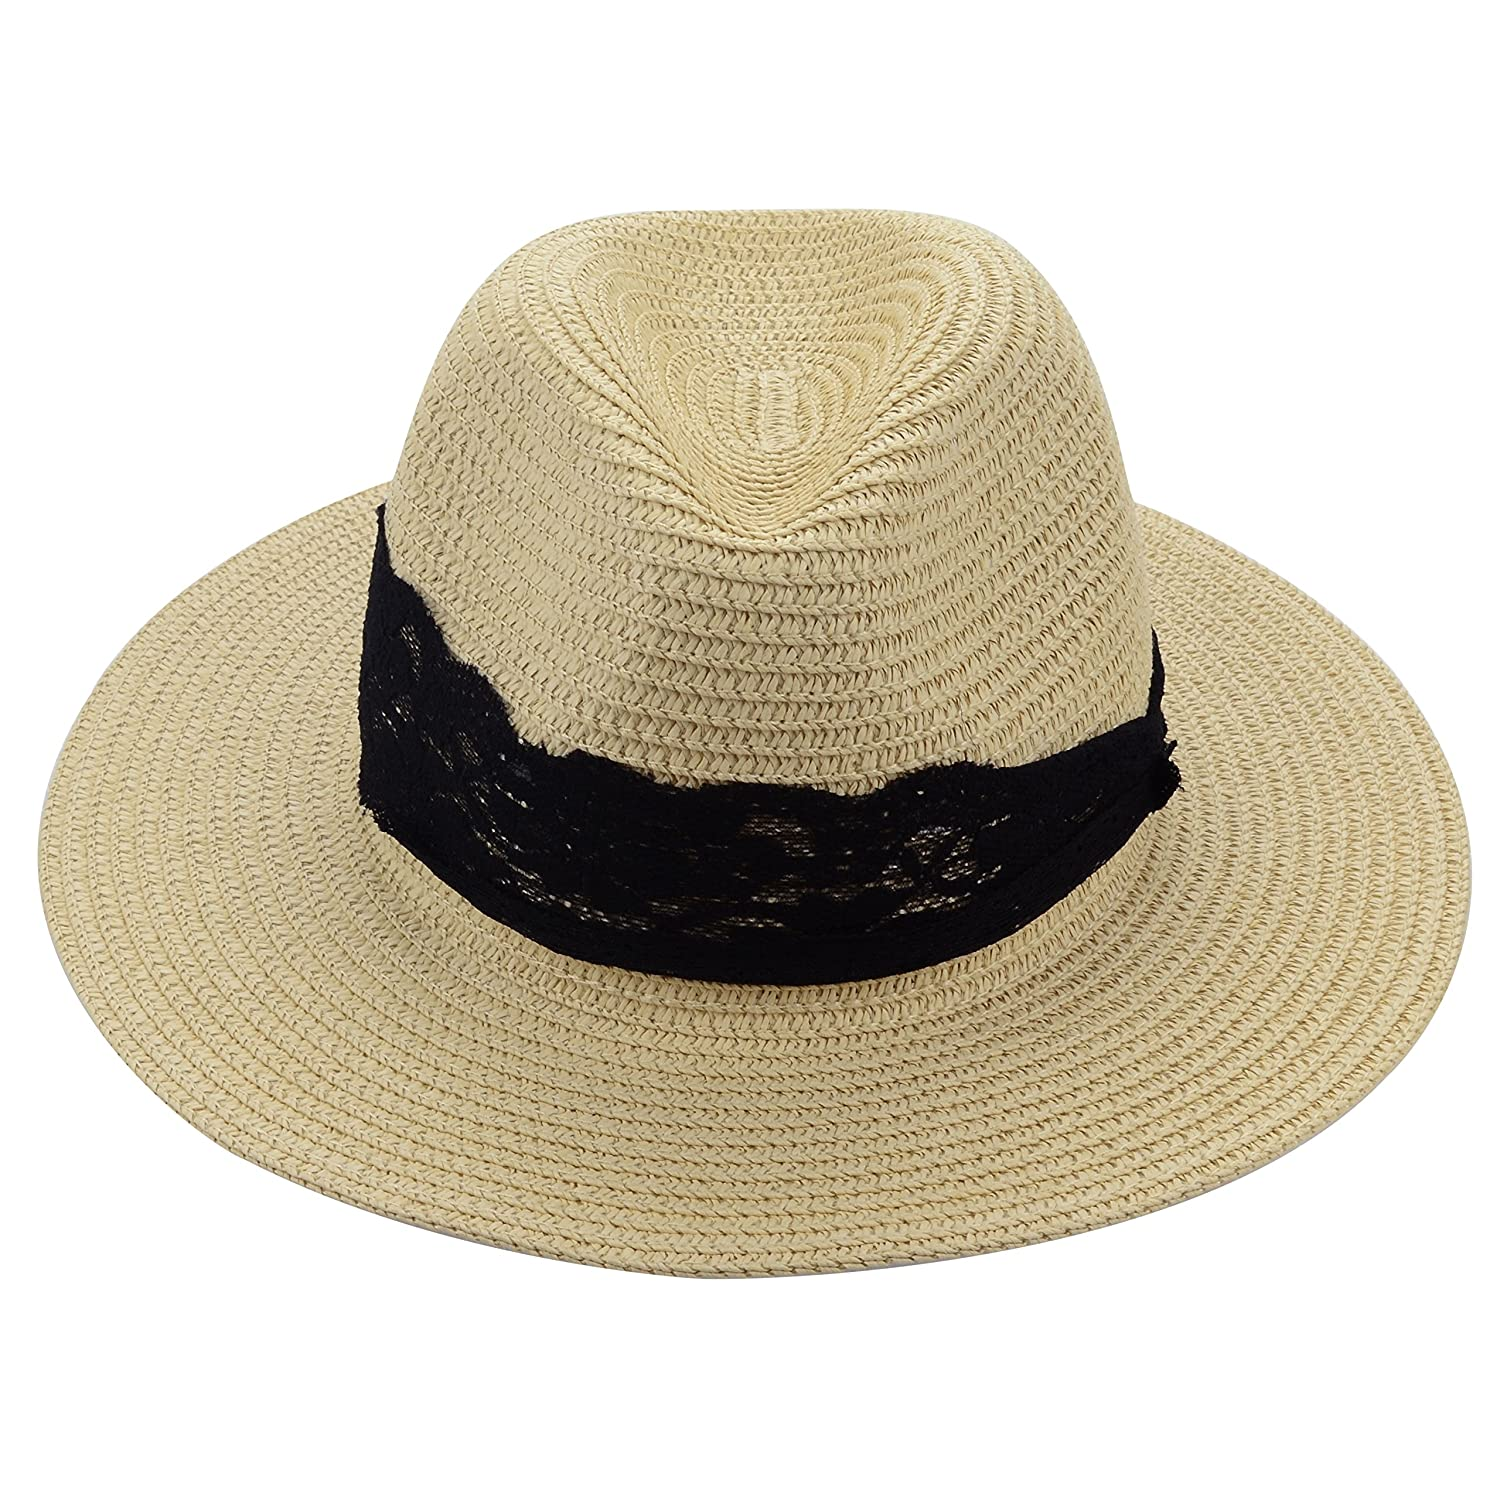 Medium Floppy Wide Brim Women s Summer Sun Beach Straw Hat with Black  Striped Band (Black Lace Ivory) at Amazon Women s Clothing store  13a542a1cbc1